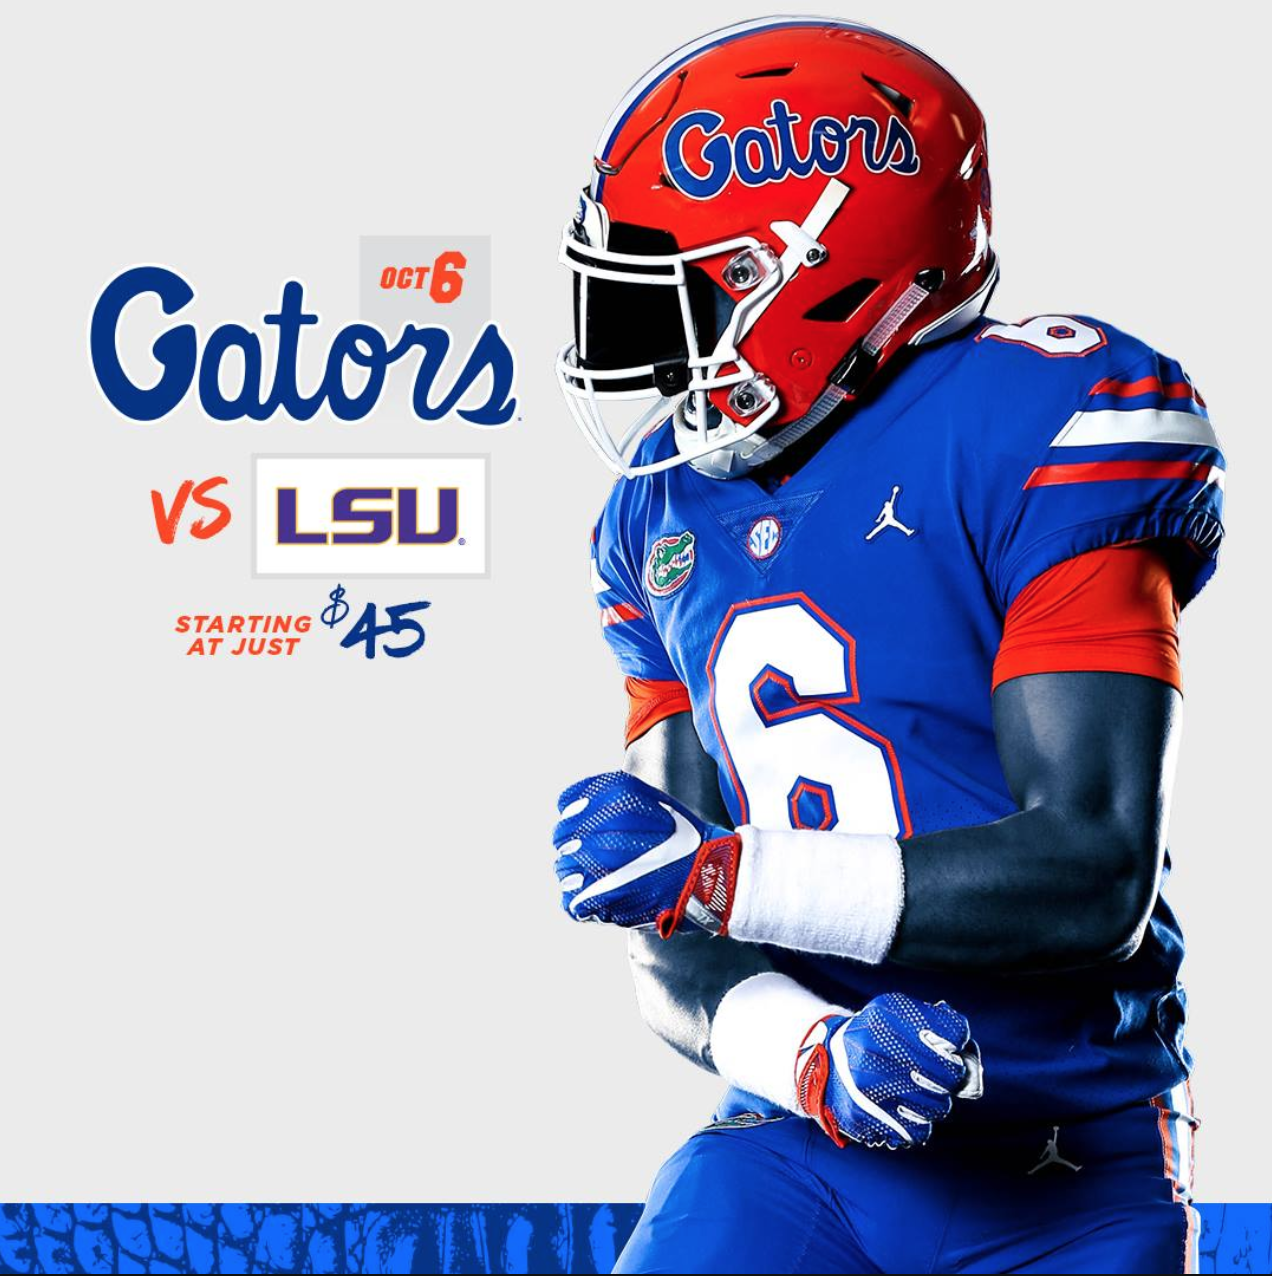 3f43fb977ed0 Here are the images we found advertising Florida s home games for the  coming season. The only game missing from the list below is the Missouri  game set to ...